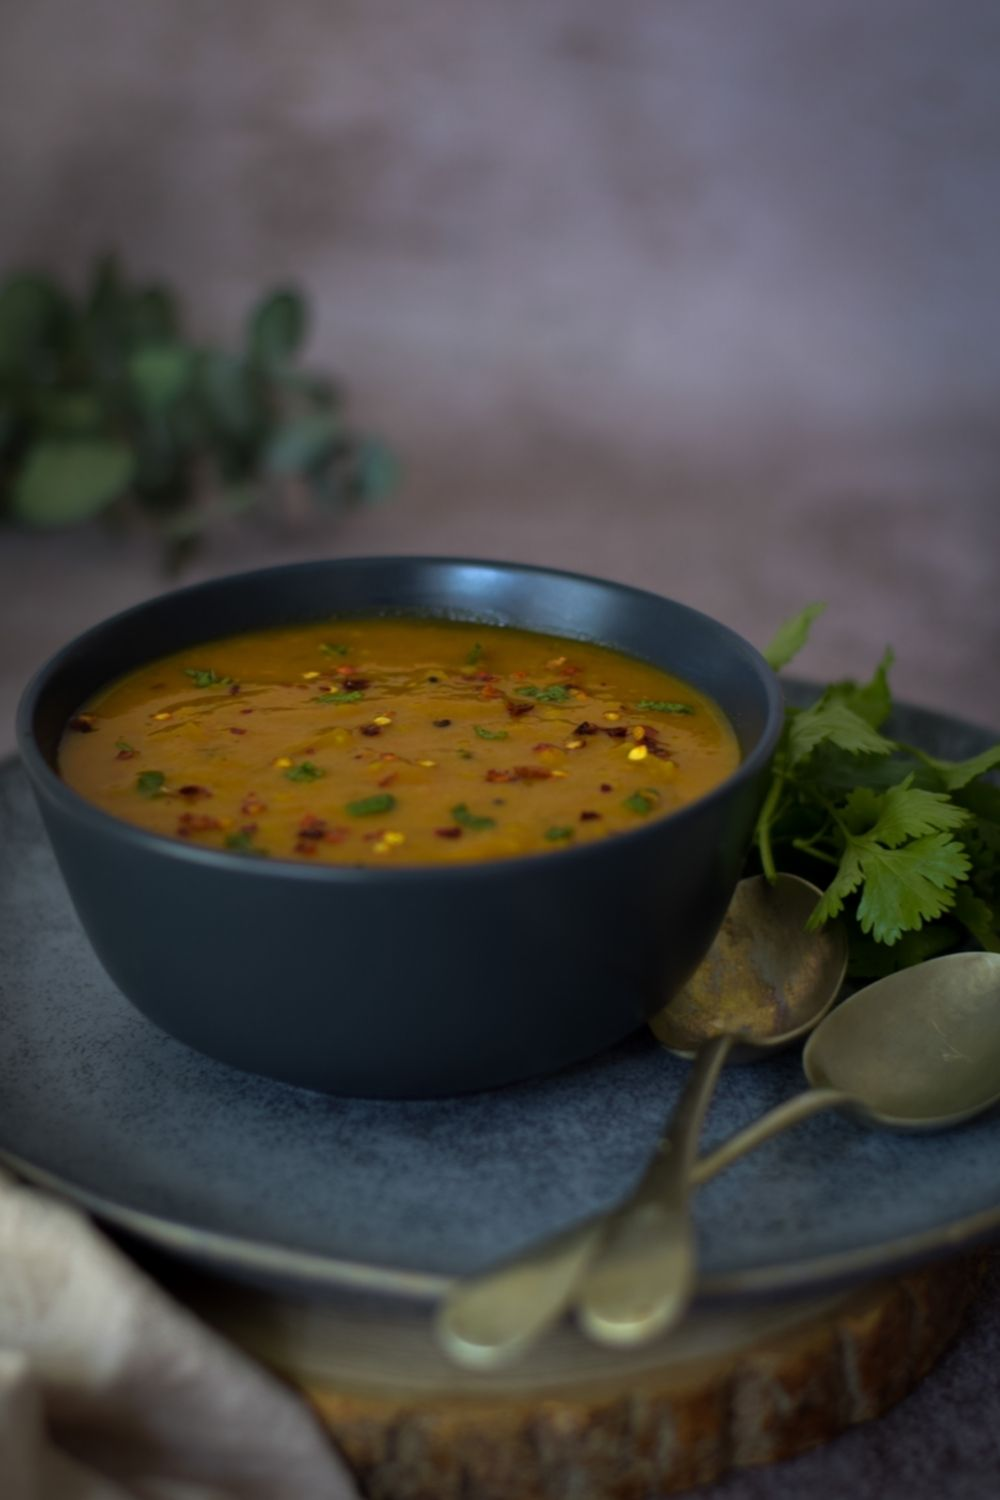 Masala Dal in a black bowl with spoons on the right side